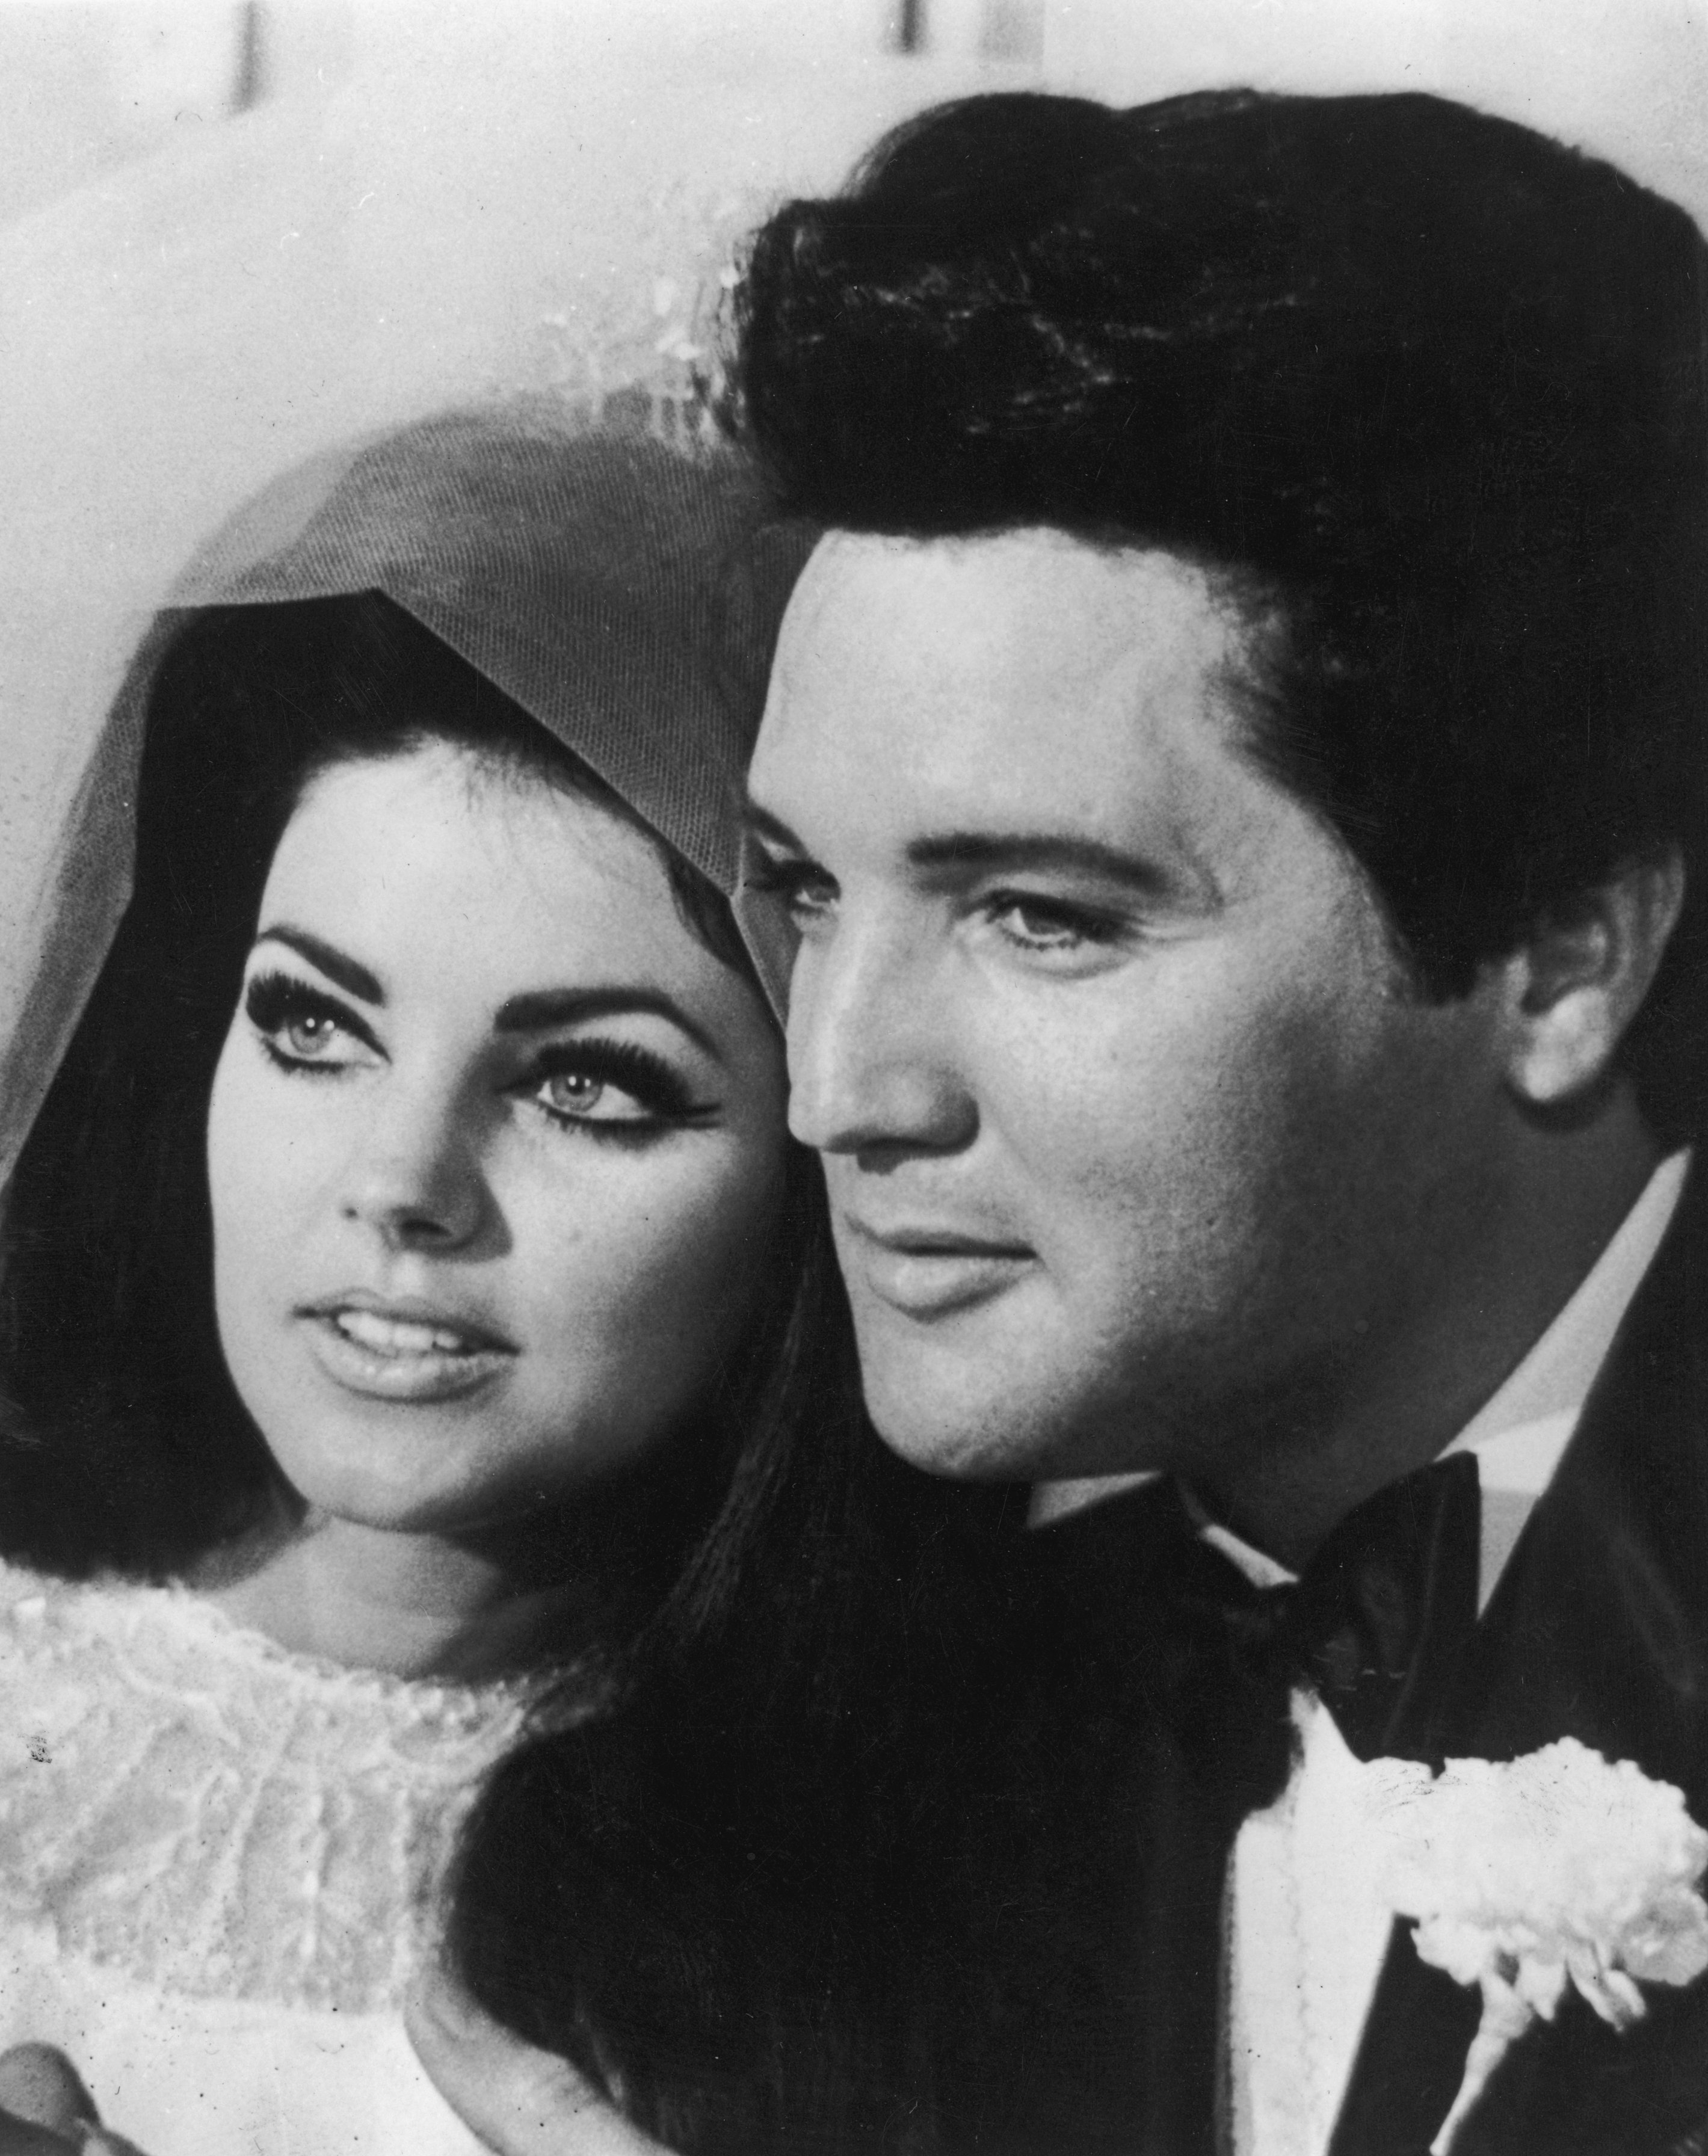 Elvis Presley with his bride Priscilla Beaulieu after their wedding in Las Vegas on May 1, 1967. | Source: Getty Images.